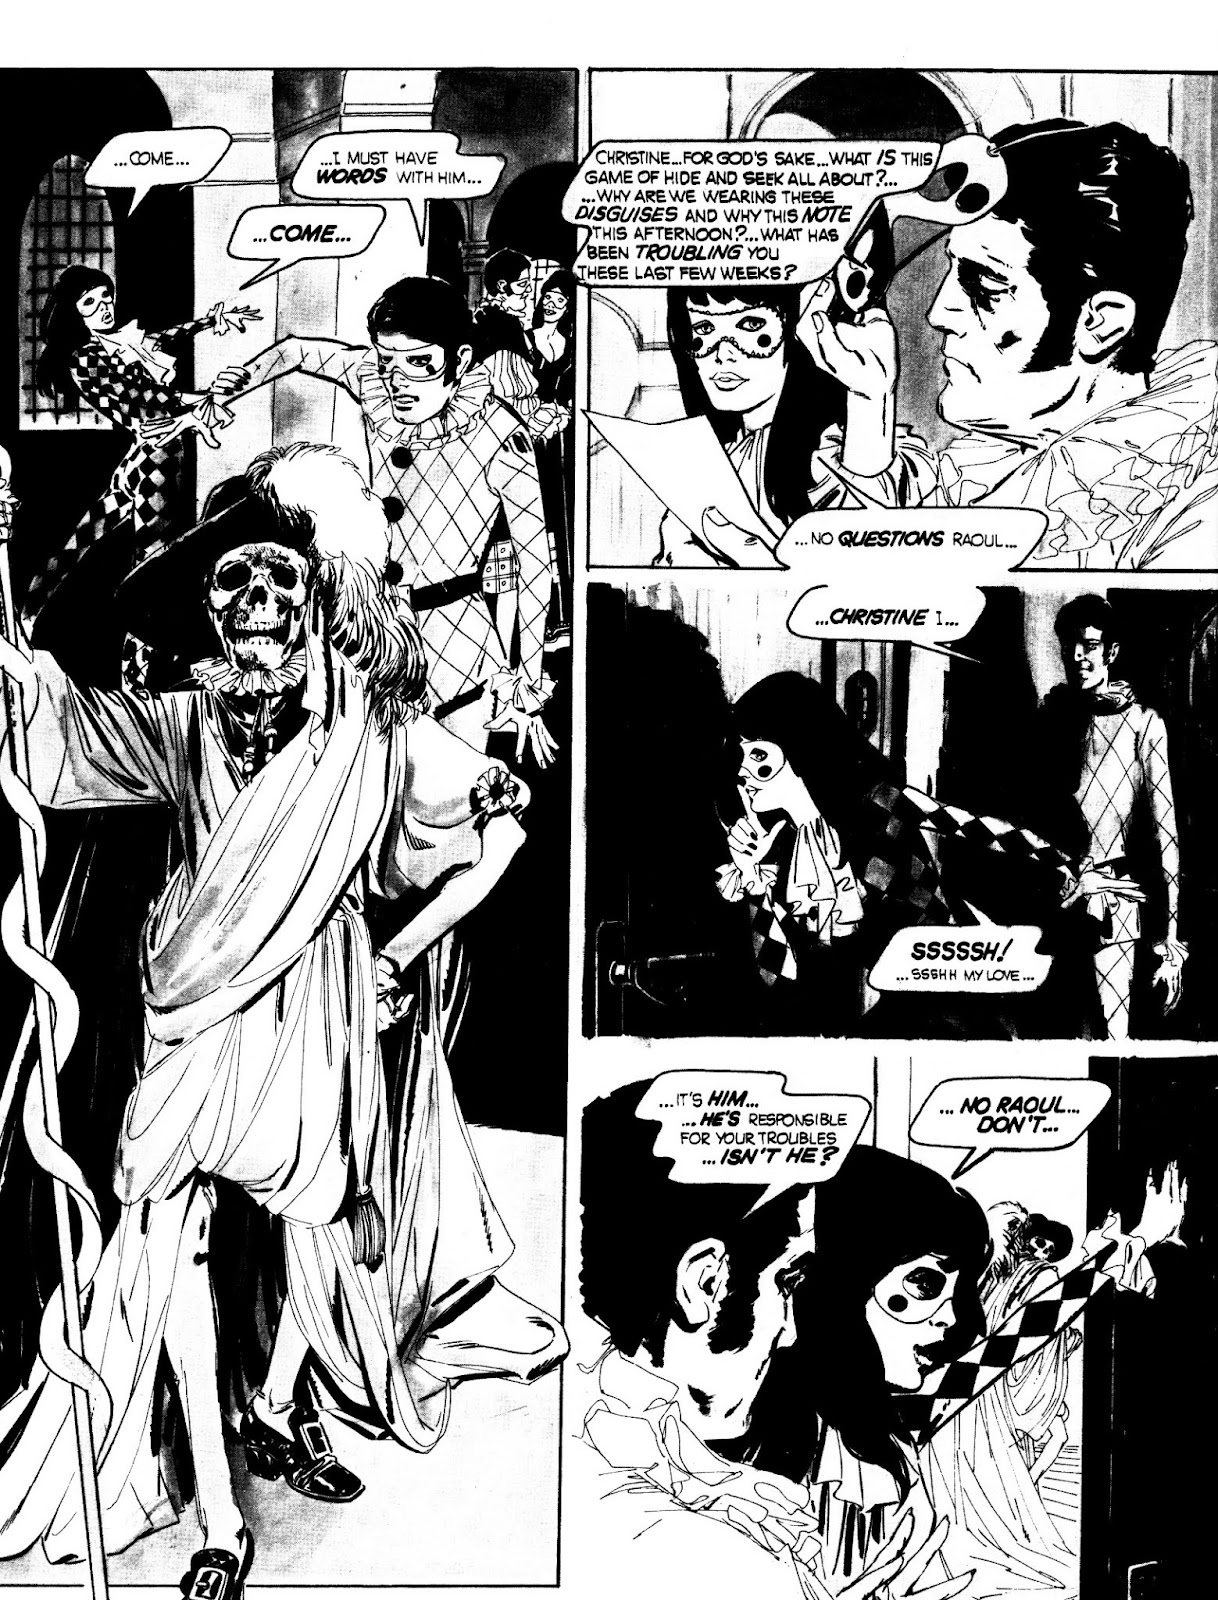 Scream (1973) issue 3 - Page 6